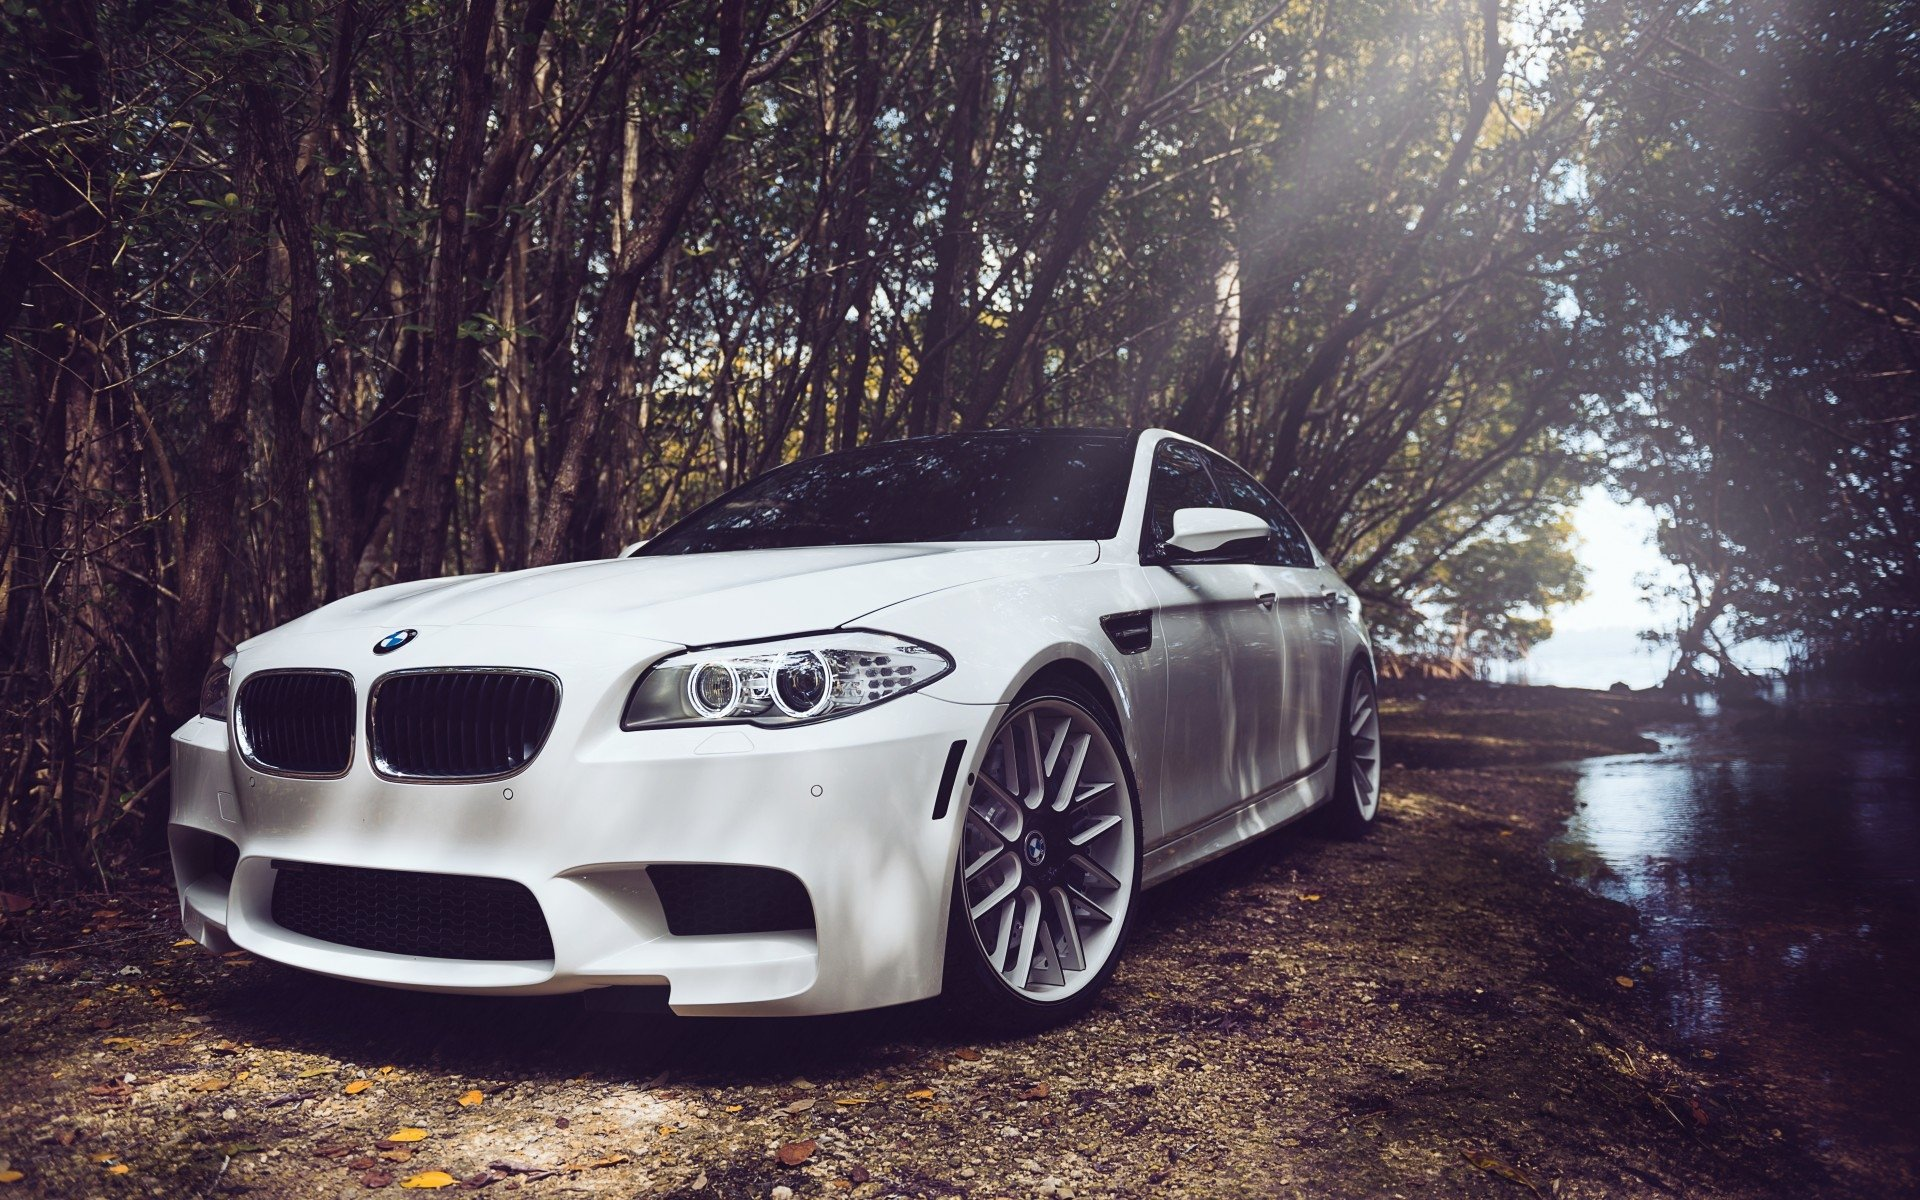 106 Bmw M5 Hd Wallpapers Background Images Wallpaper Abyss